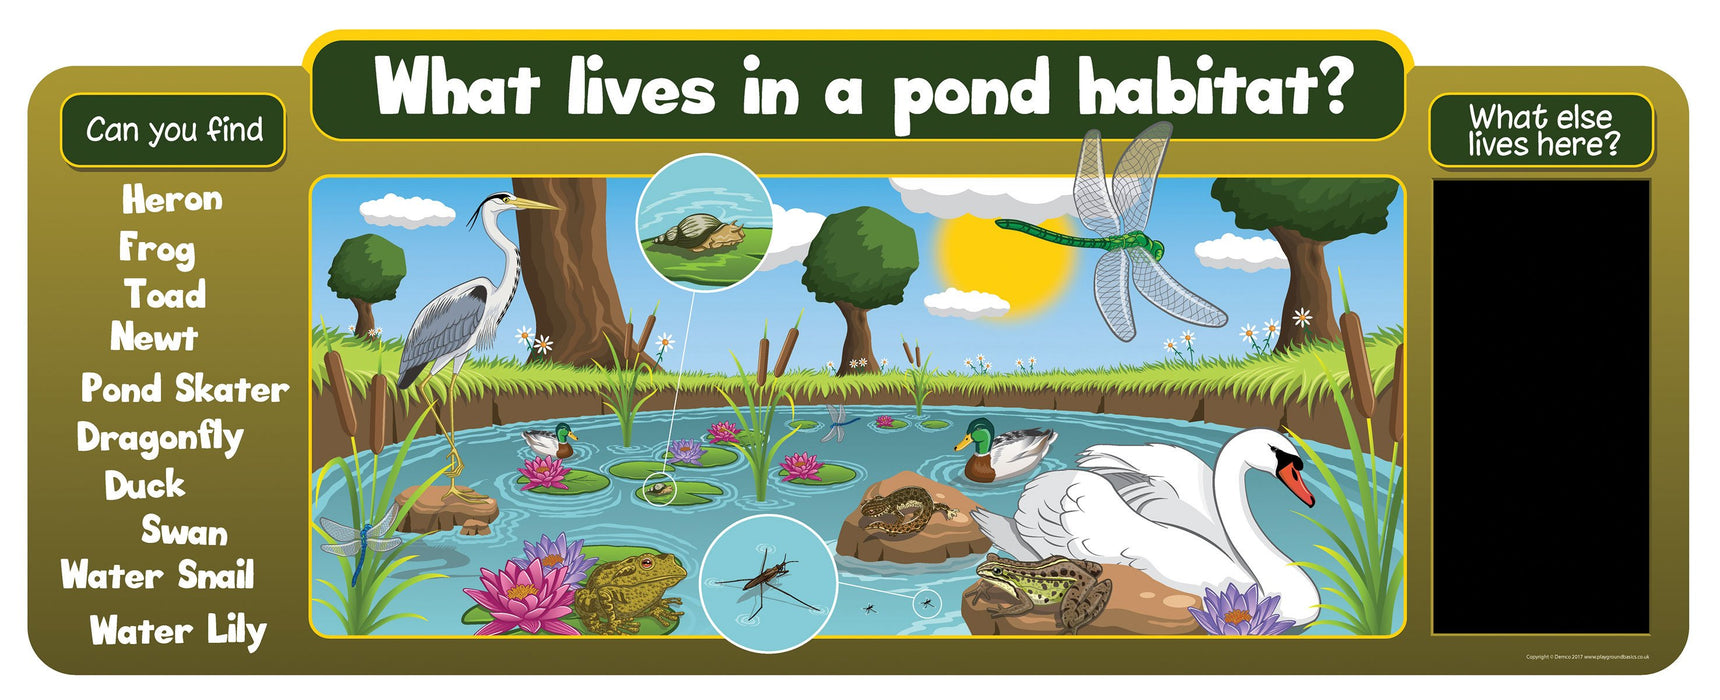 Pond Habitat Sign